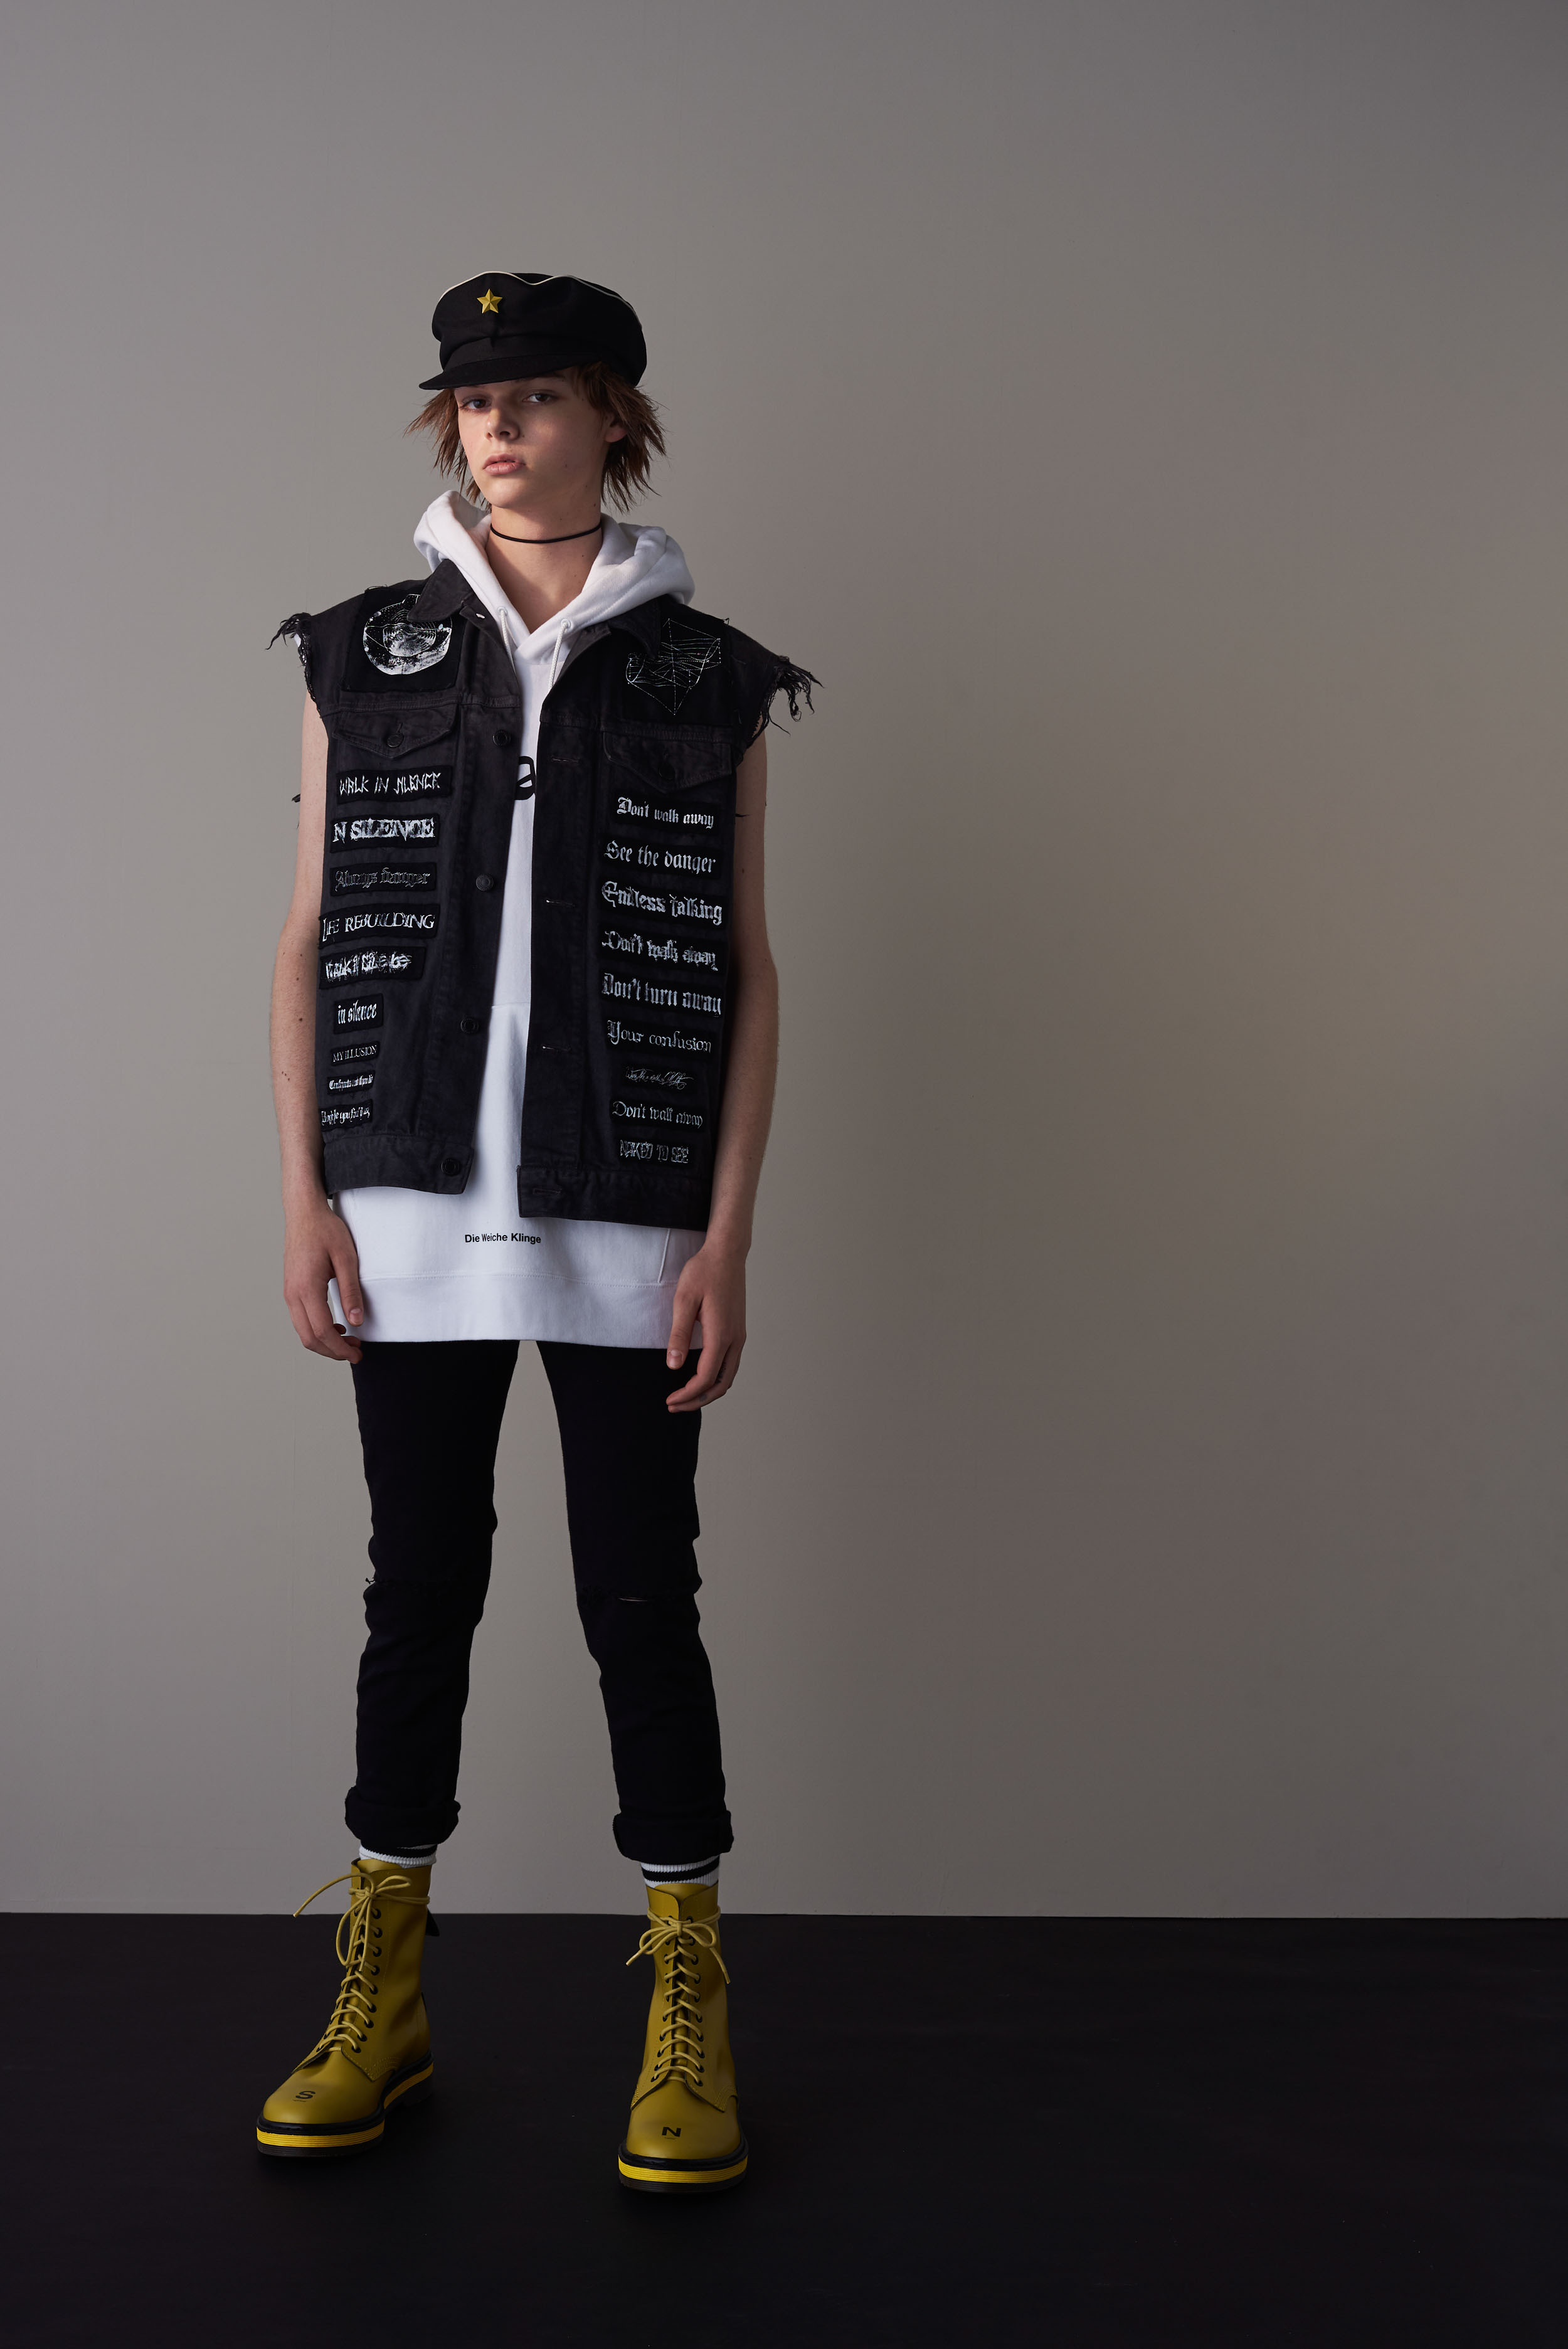 UNDERCOVER S/S18 Men's - Lookbook - fashion - Undercover, SZ, StyleZeitgeist, SS18, Spring Summer, MENSWEAR, Mens Fashion, lookbook, Jun Takahashi, Fashion, 2017